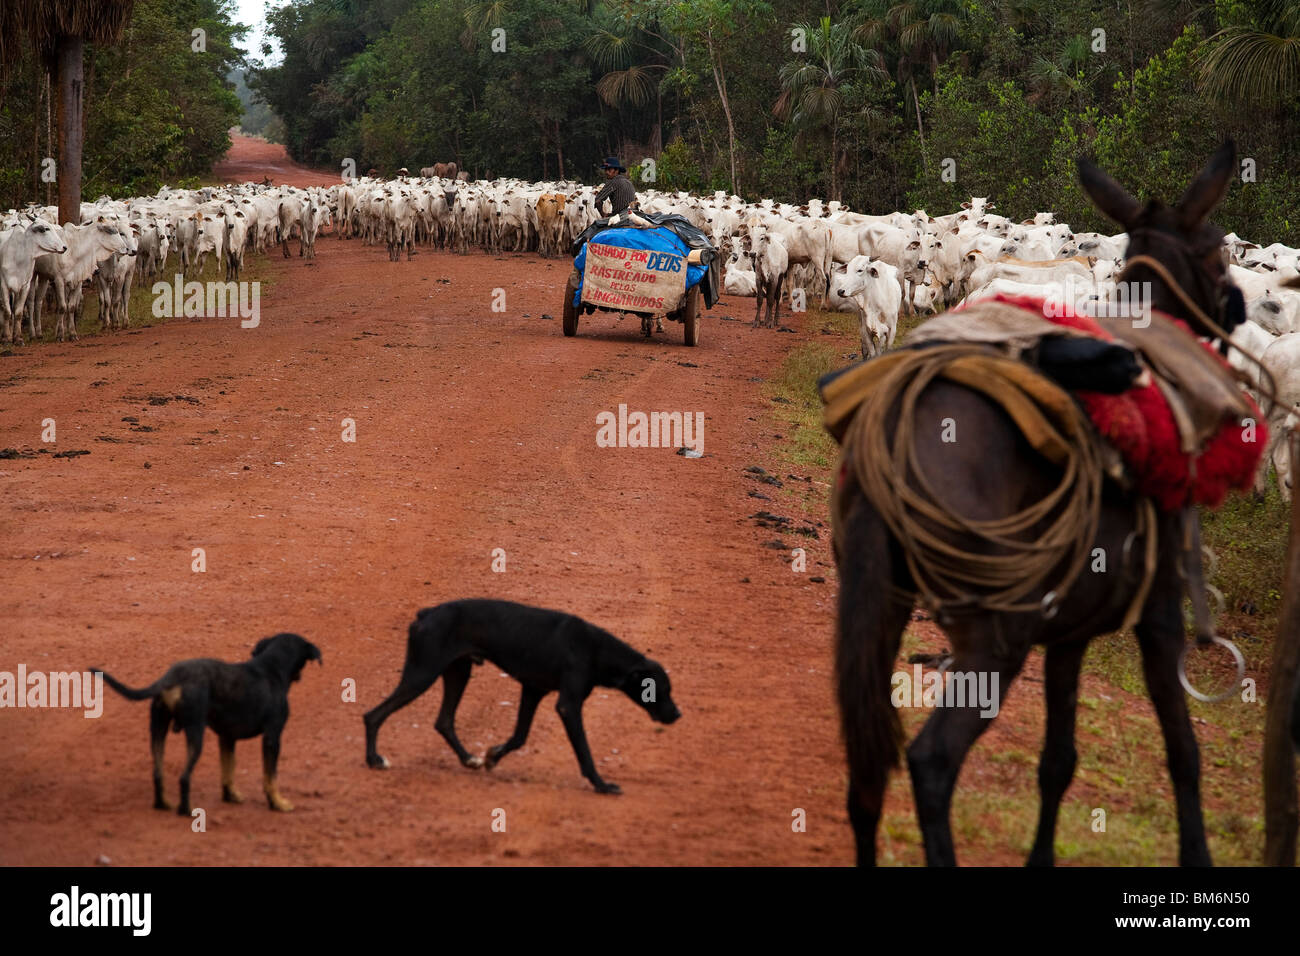 Herd of cattle, BR-163 road ( Cuiabá - Santarém road ) at South Para State, Amazon, Brazil. - Stock Image